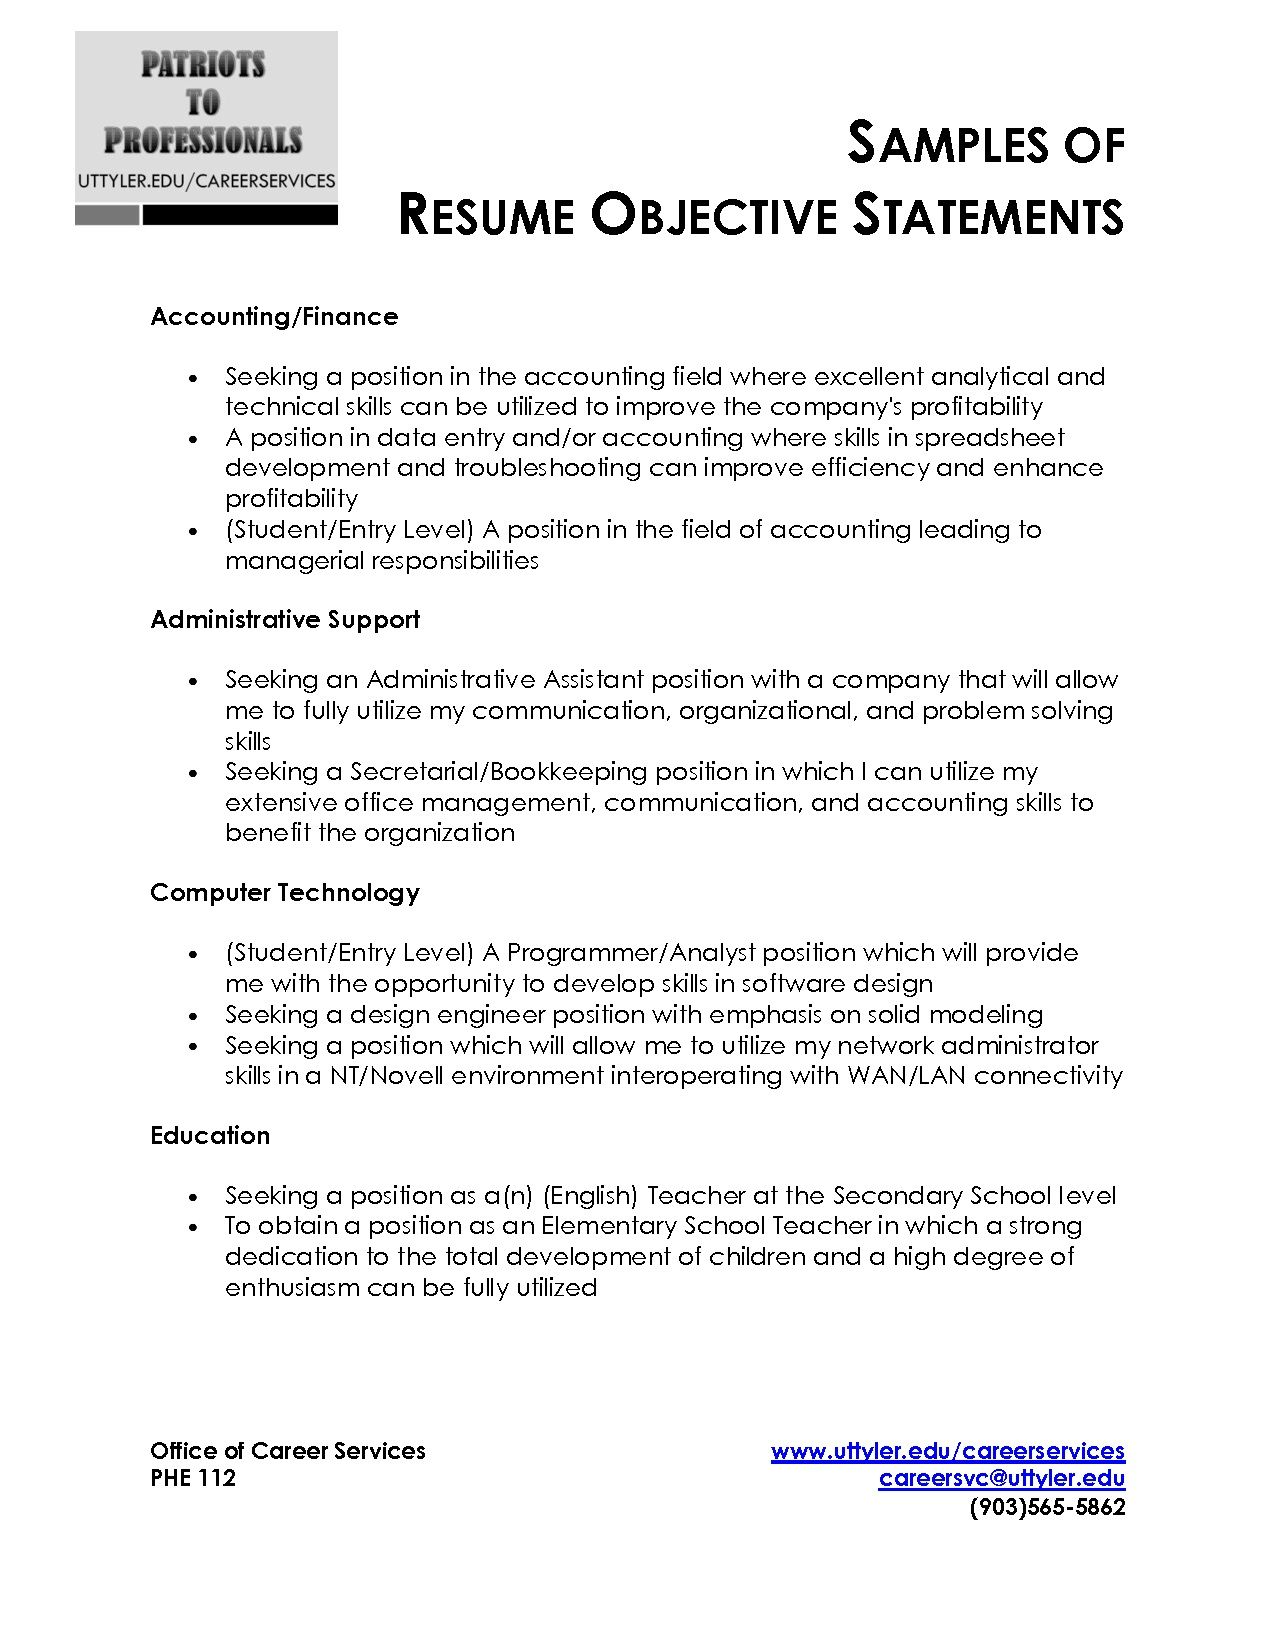 Accounting Student Resume Sample Resume Objective Statement  Adsbygoogle  Window